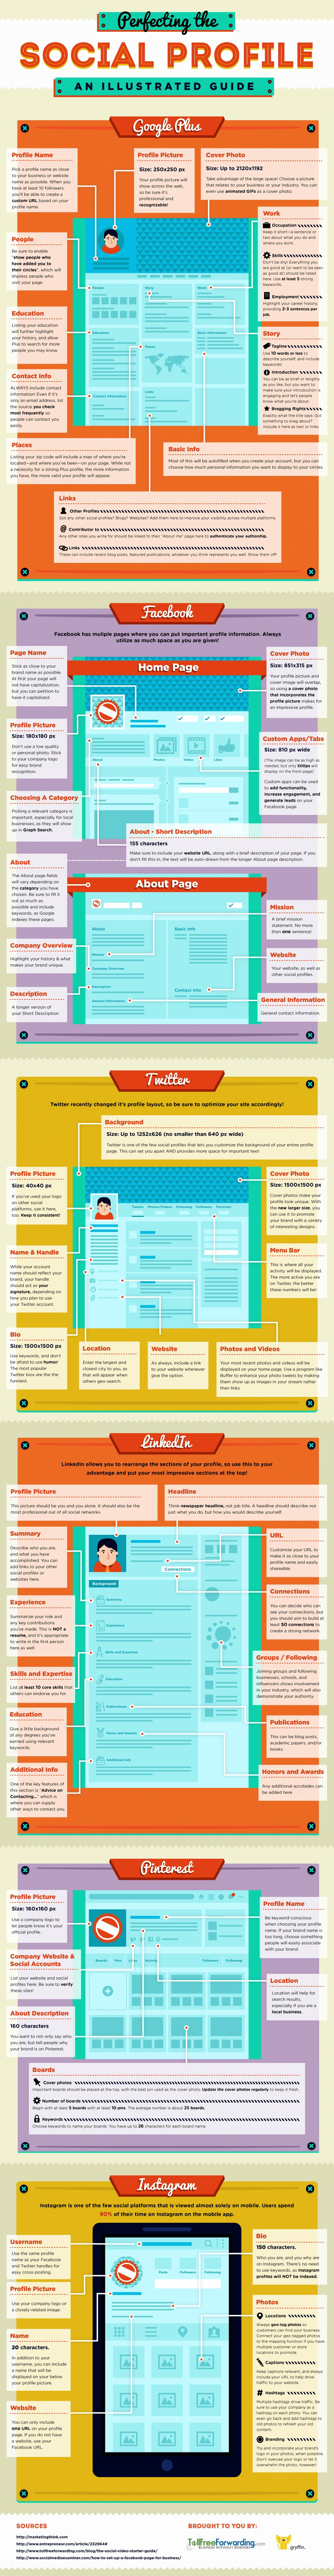 How to Make a Perfect Social Media Profile: An Illustrated Guide #infographic #socialmedia